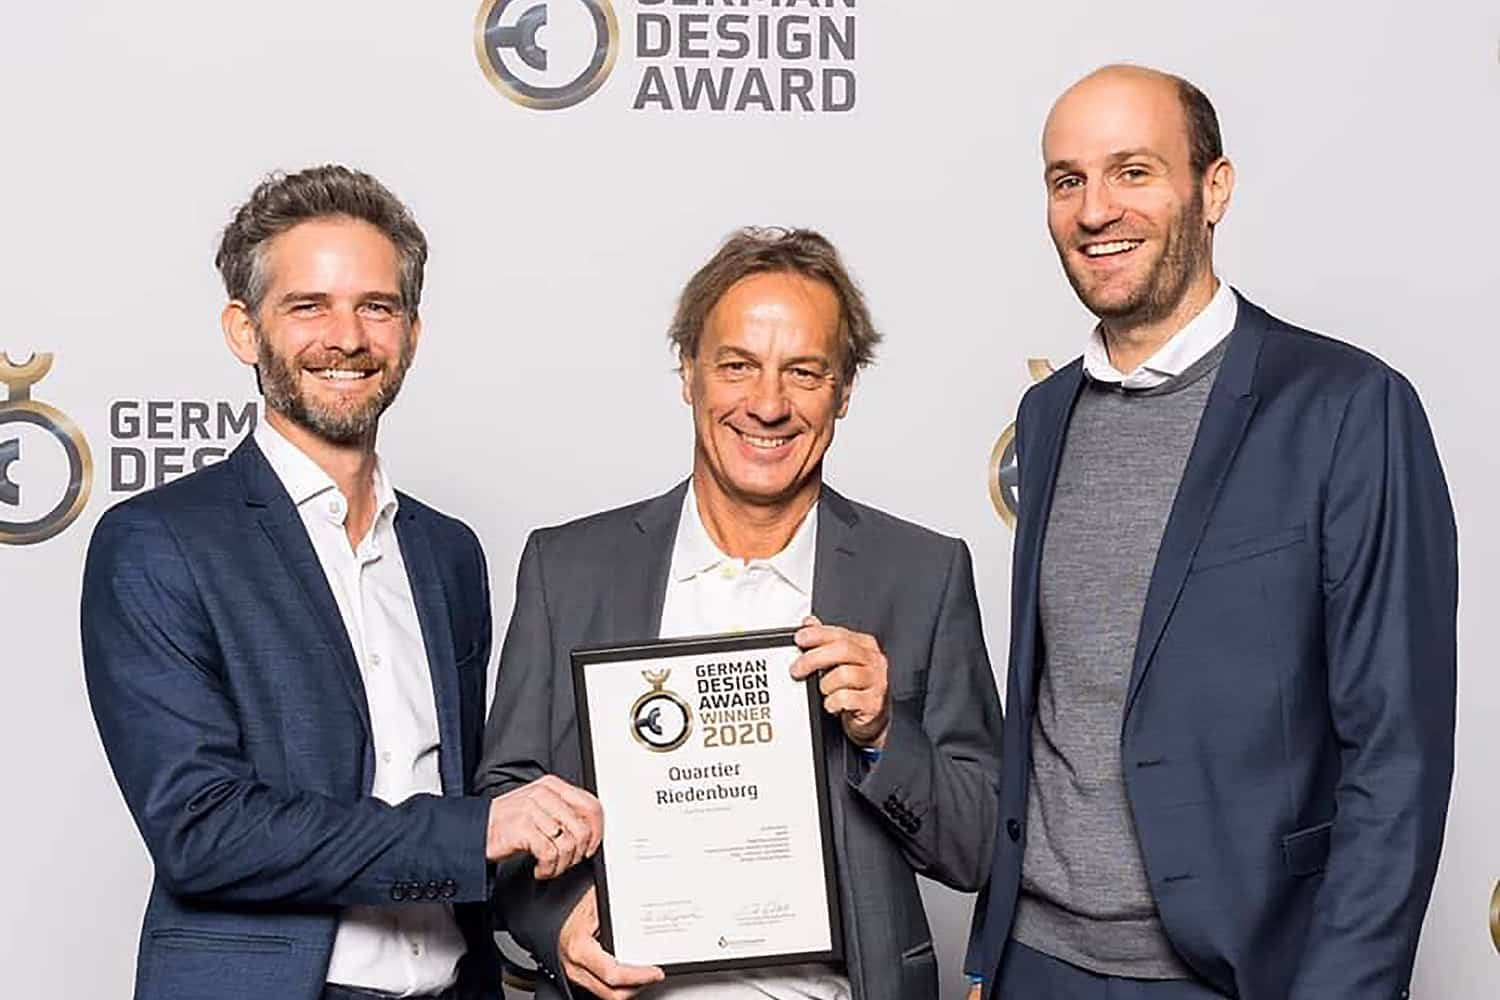 Award, German Design Award 2020 | Frankfurt